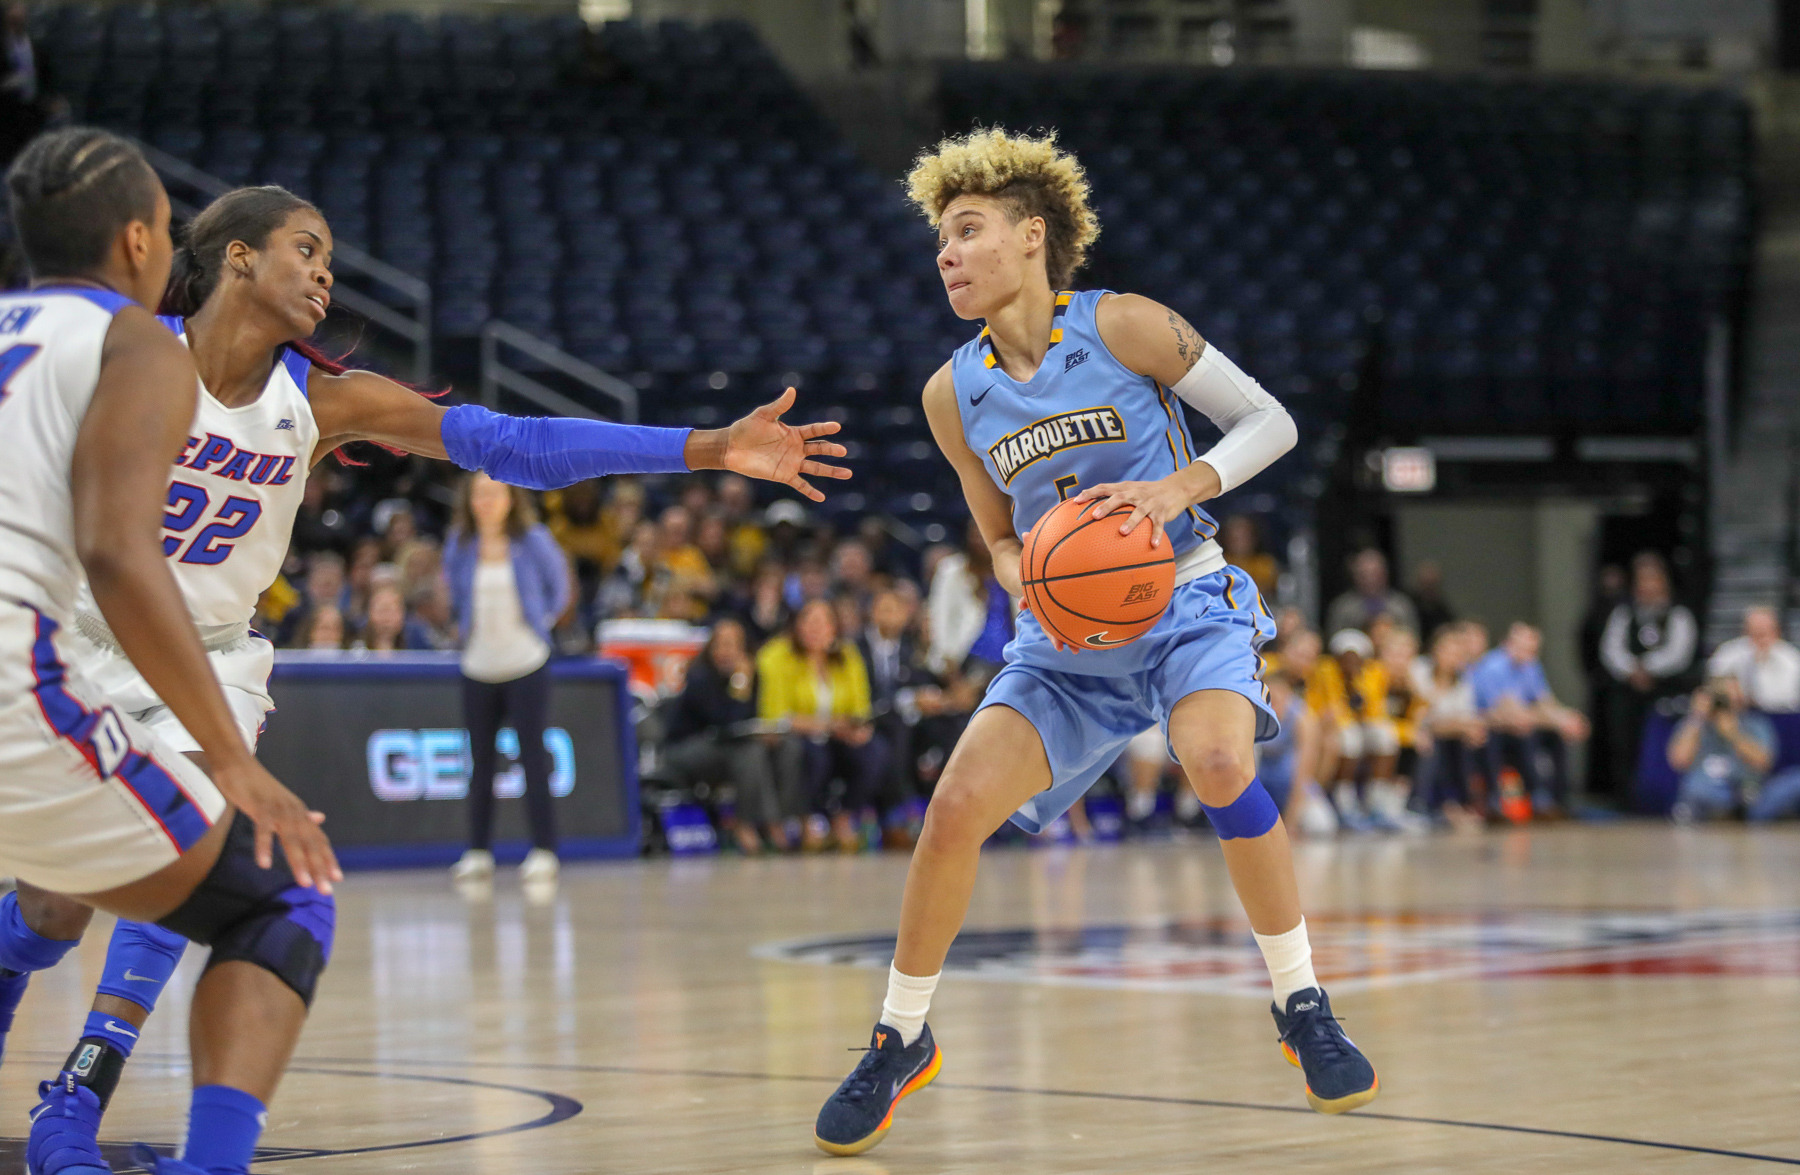 marquette falls to depaul, 98-63, in big east title game - marquette